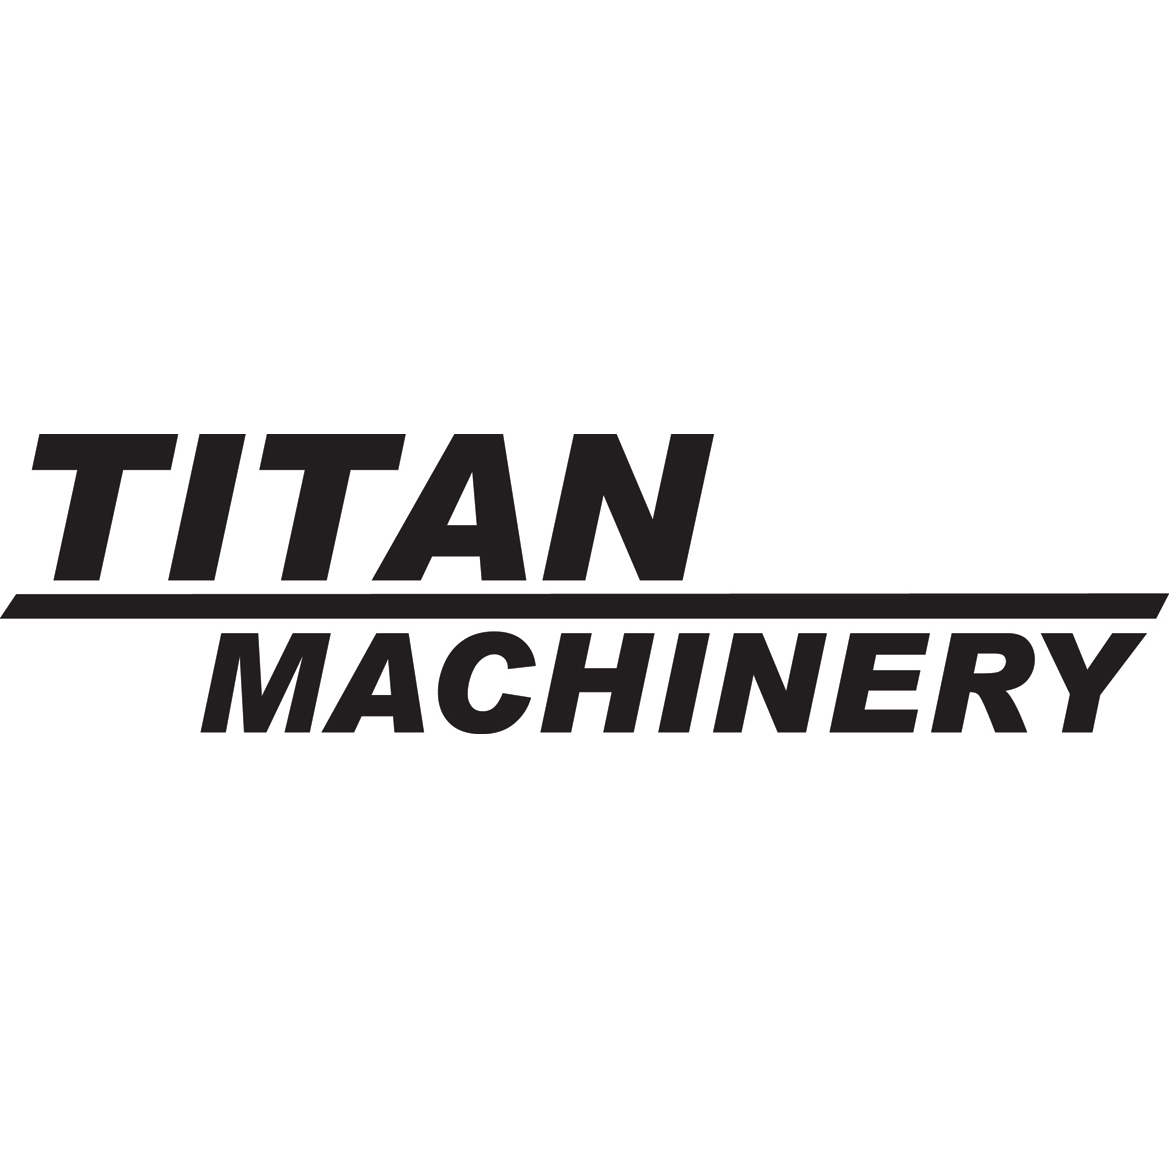 Titan Machinery image 2